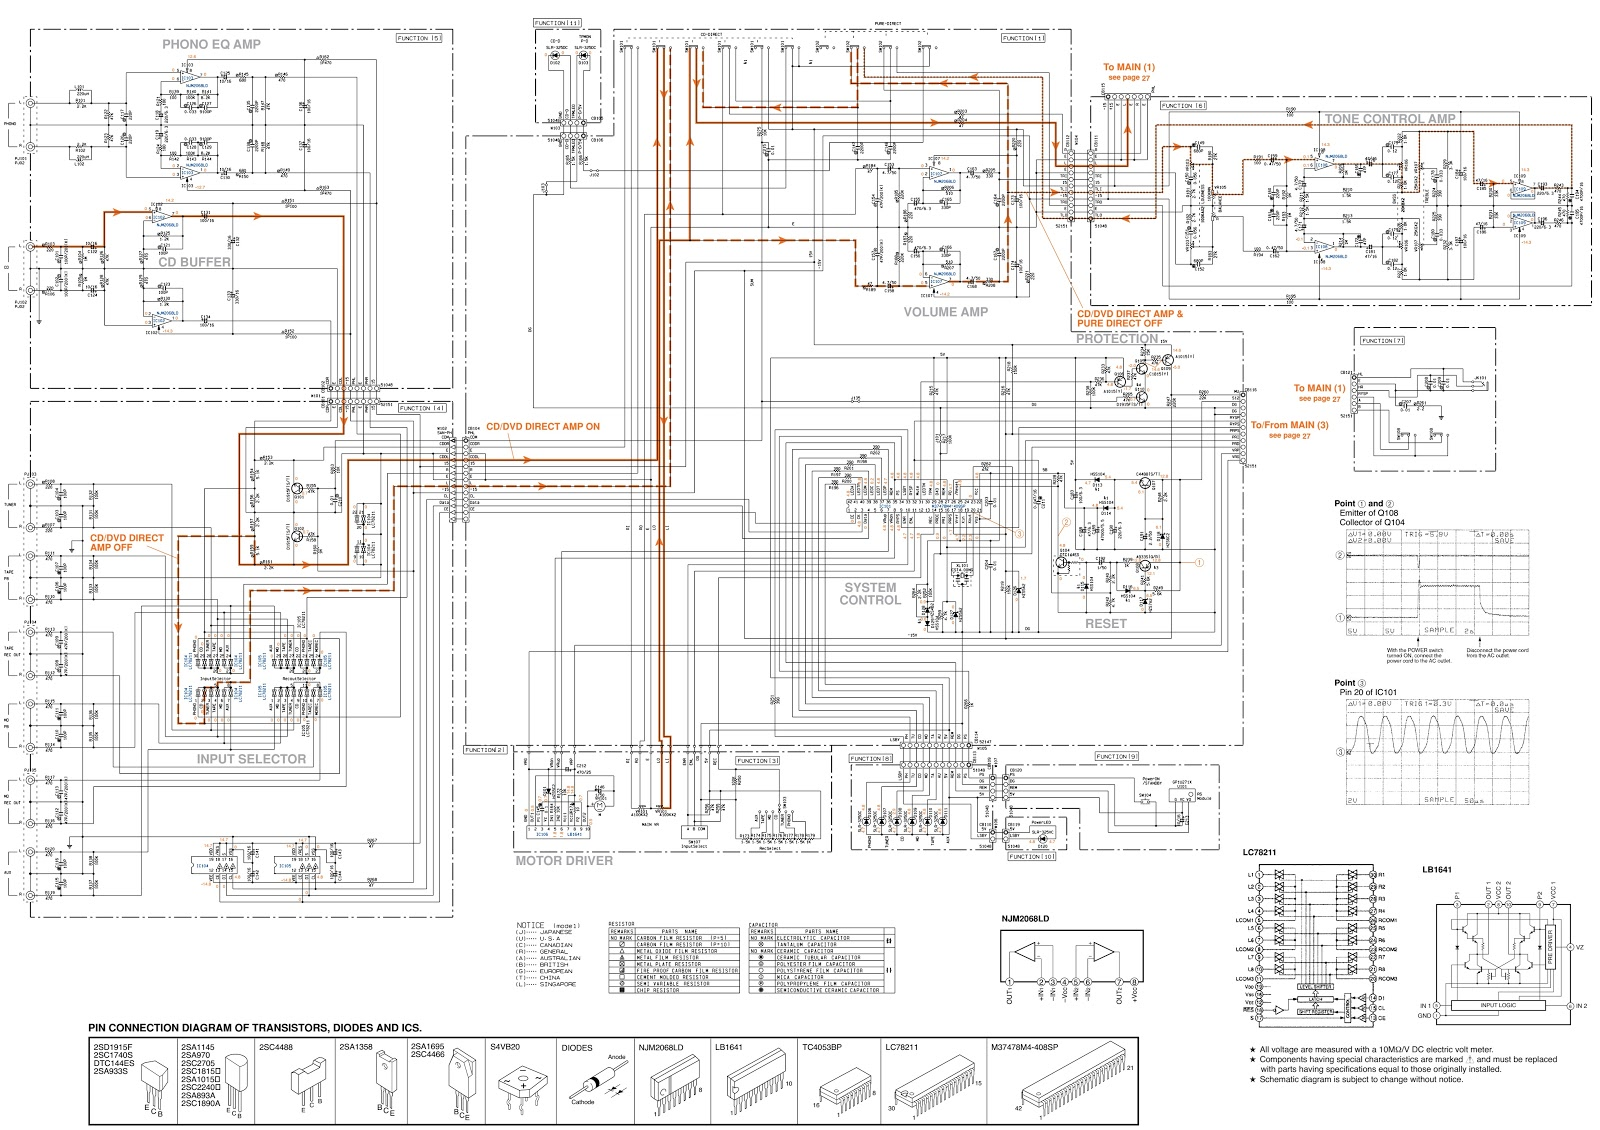 Yamaha Ax496 Stereo Amplifier Circuit Diagram